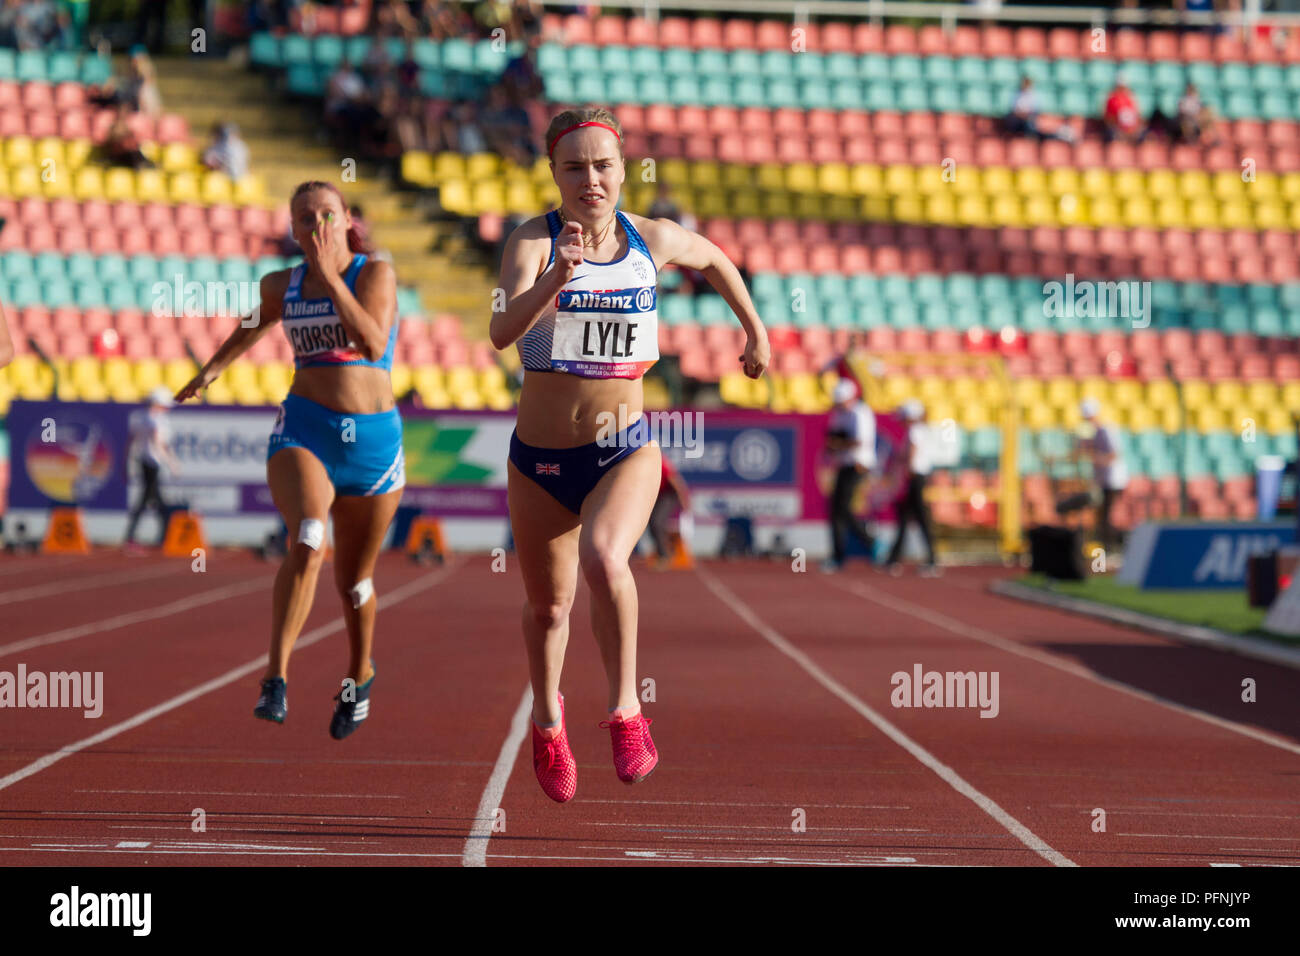 Berlin, Germany. 22nd August, 2018. Maria Lyle running in the Women's T35 100m on Day 3 of the World Para Athletics European Championships in Berlin, Germany Credit: Ben Booth/Alamy Live News - Stock Image